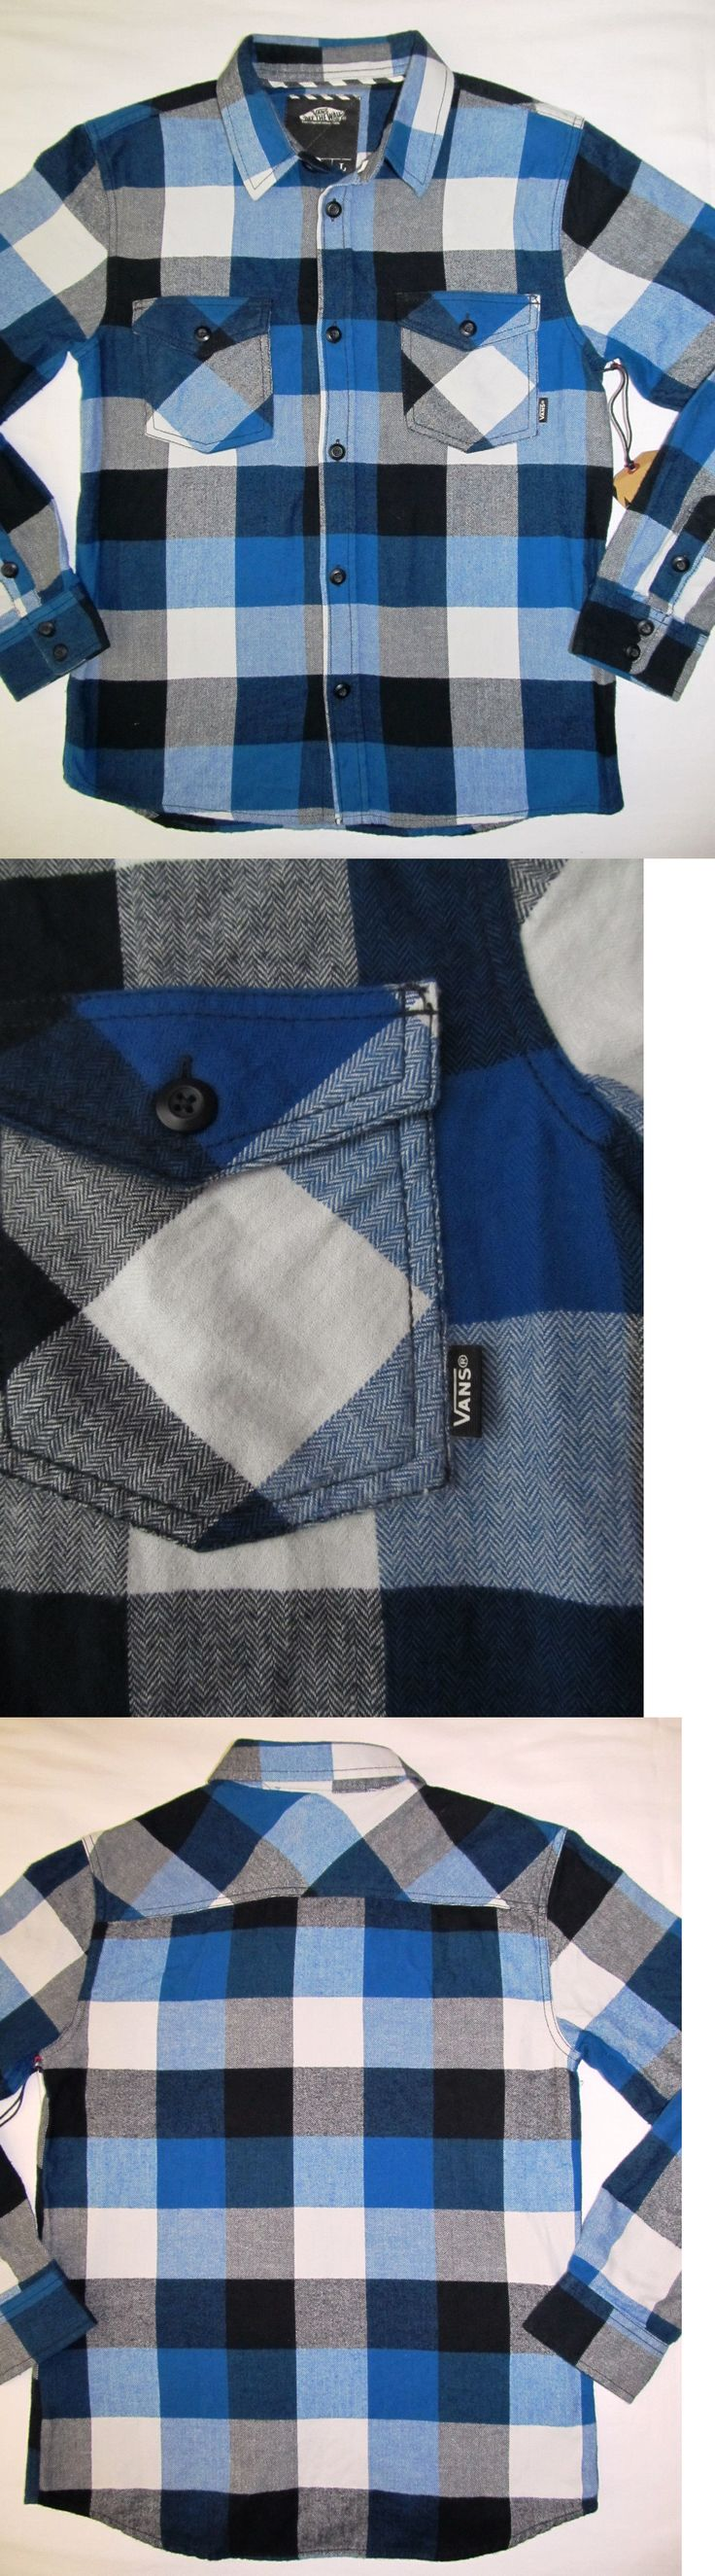 Tops Shirts and T-Shirts 175521: New Youth Boys Vans Box Flannel Long Sleeve Shirt Blue Black White Plaid Large -> BUY IT NOW ONLY: $32.99 on eBay!